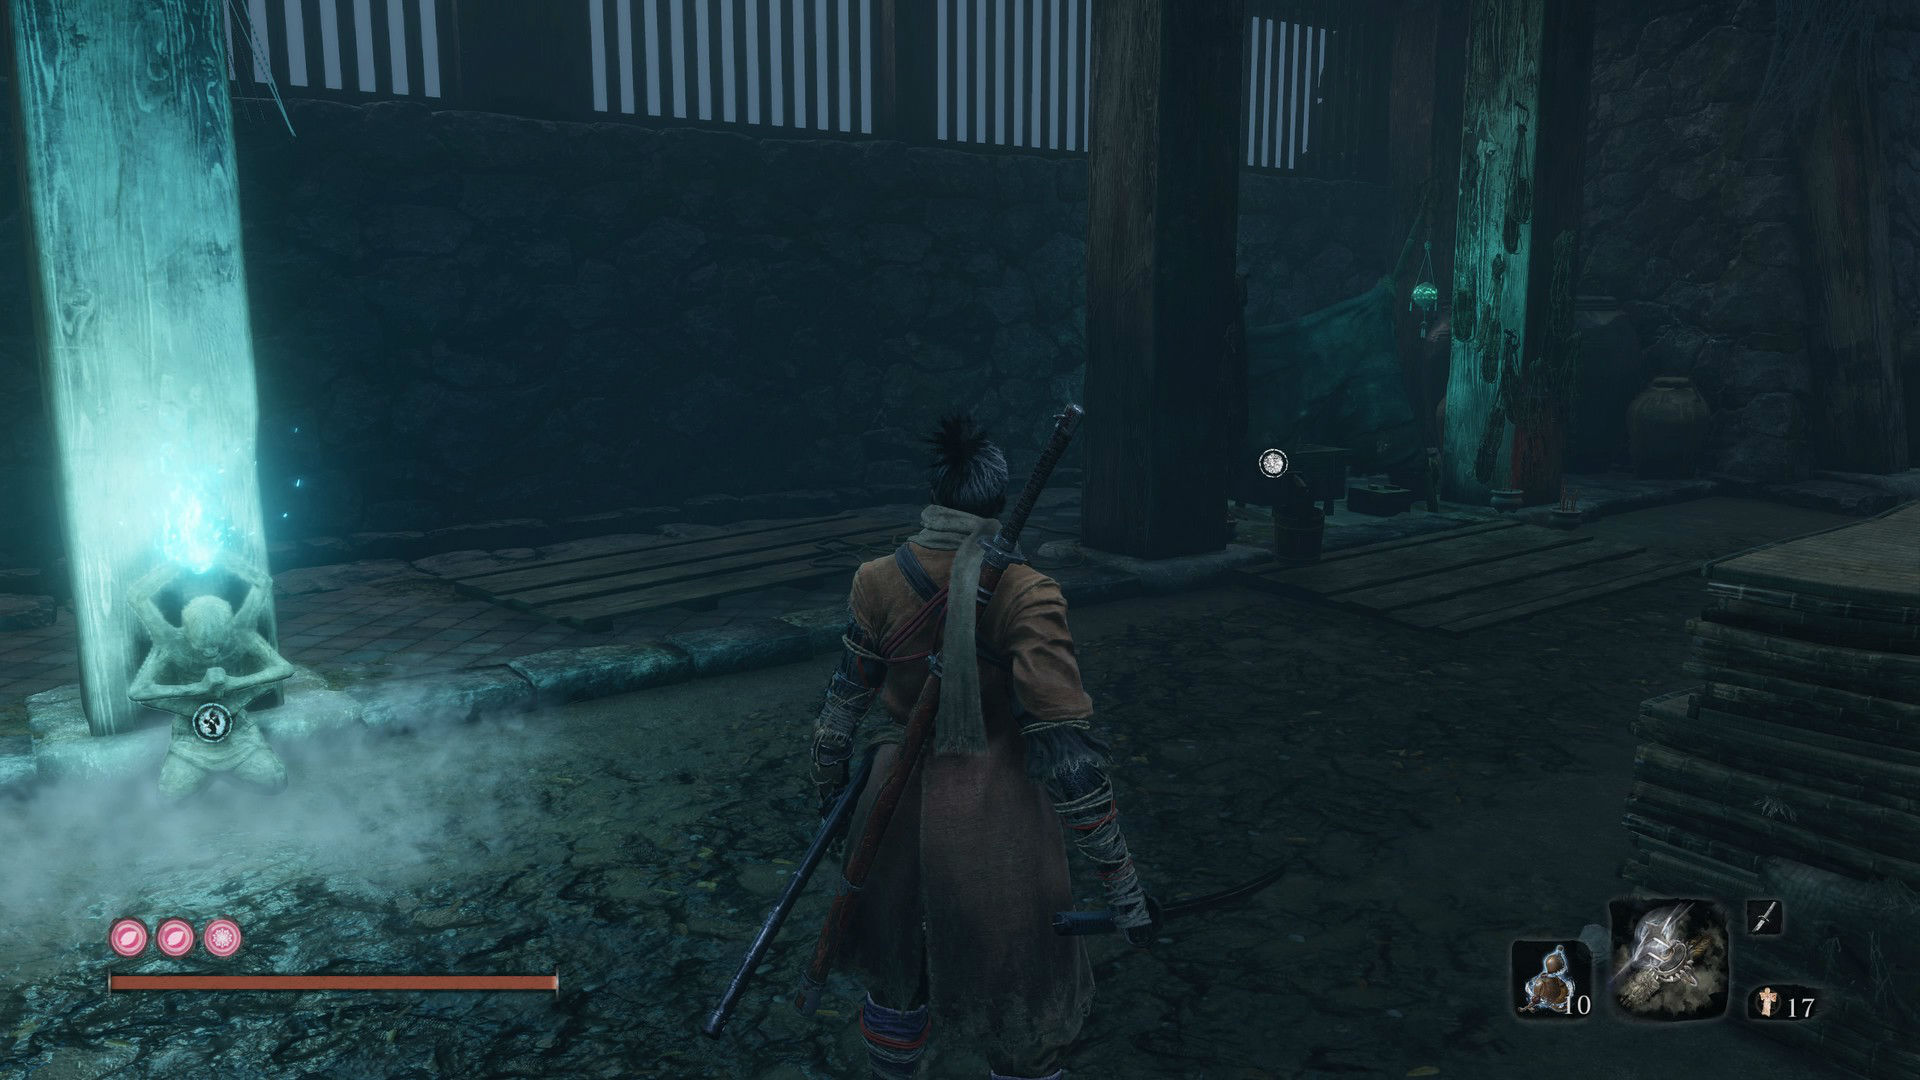 Buy a Mask Fragment from the Dungeon Memorial Mob in the Abandoned Dungeon Entrance